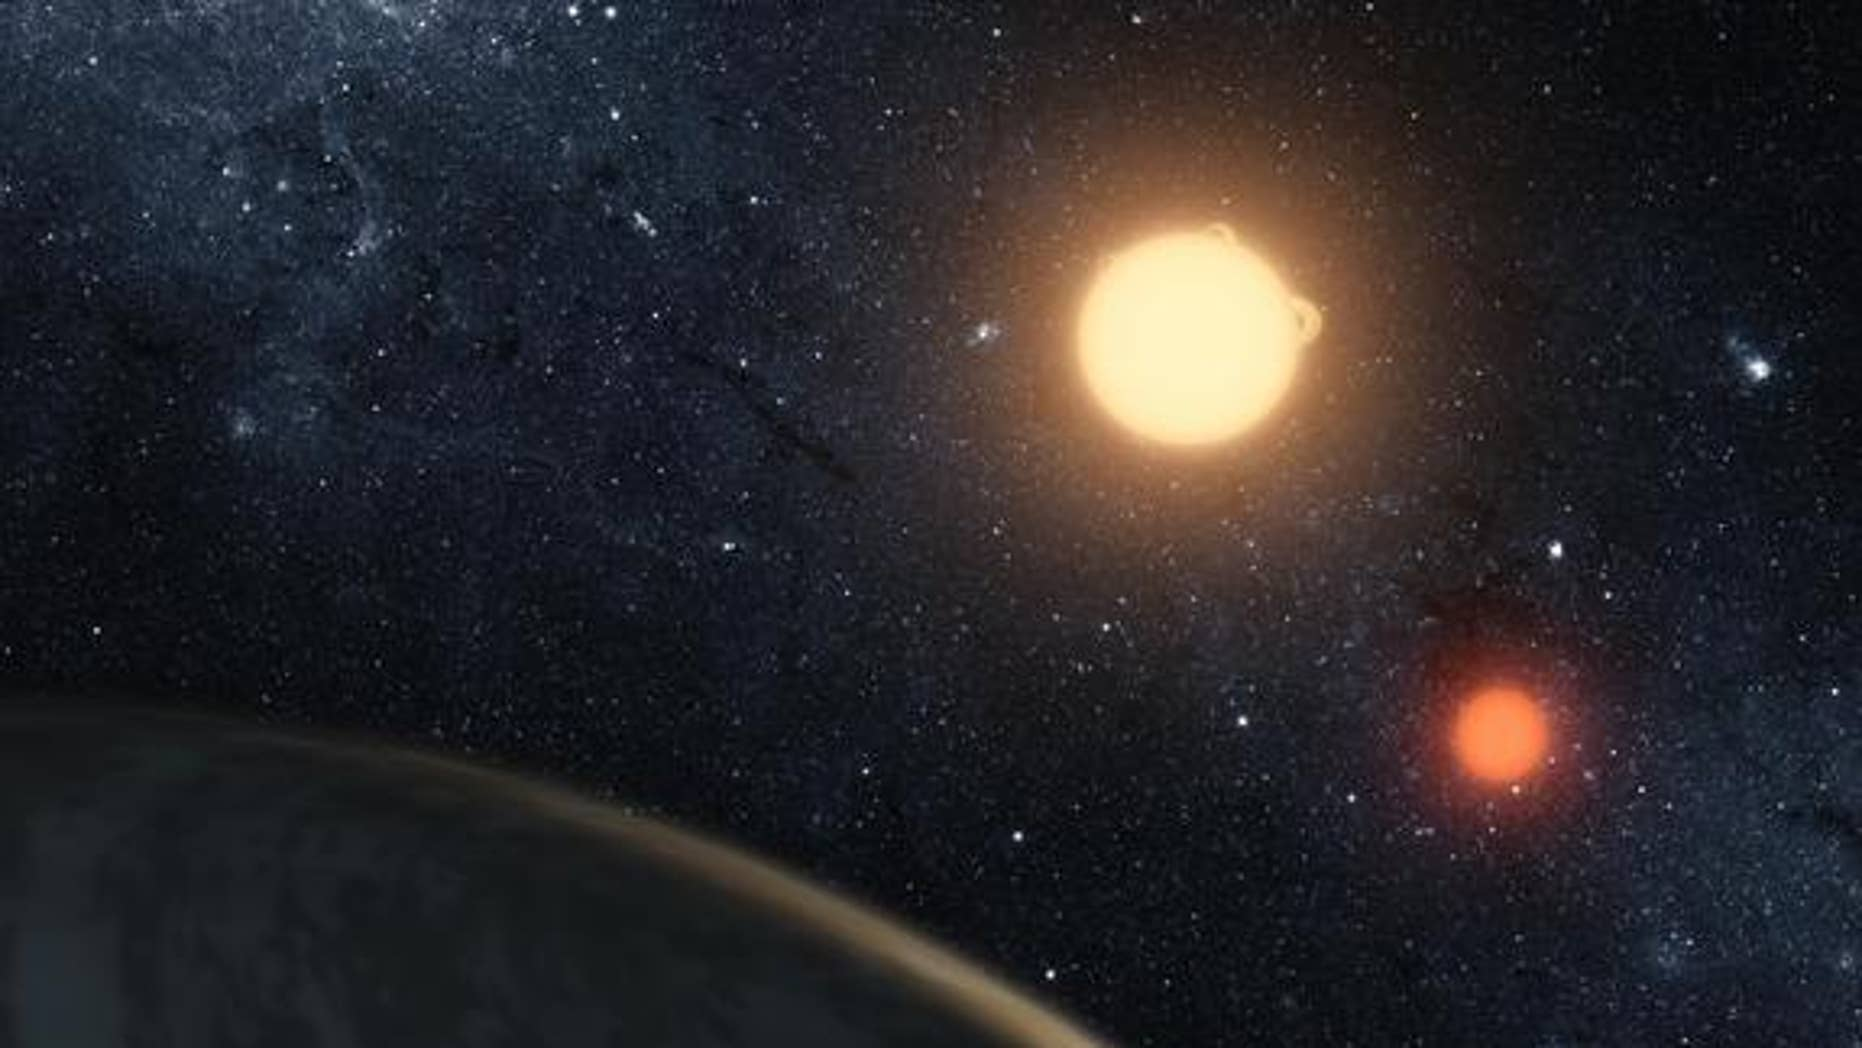 An artist's illustration of Kepler-16b, the first planet known to definitively orbit two stars. More planets orbiting two stars have been found since Kepler-16b's discovery.